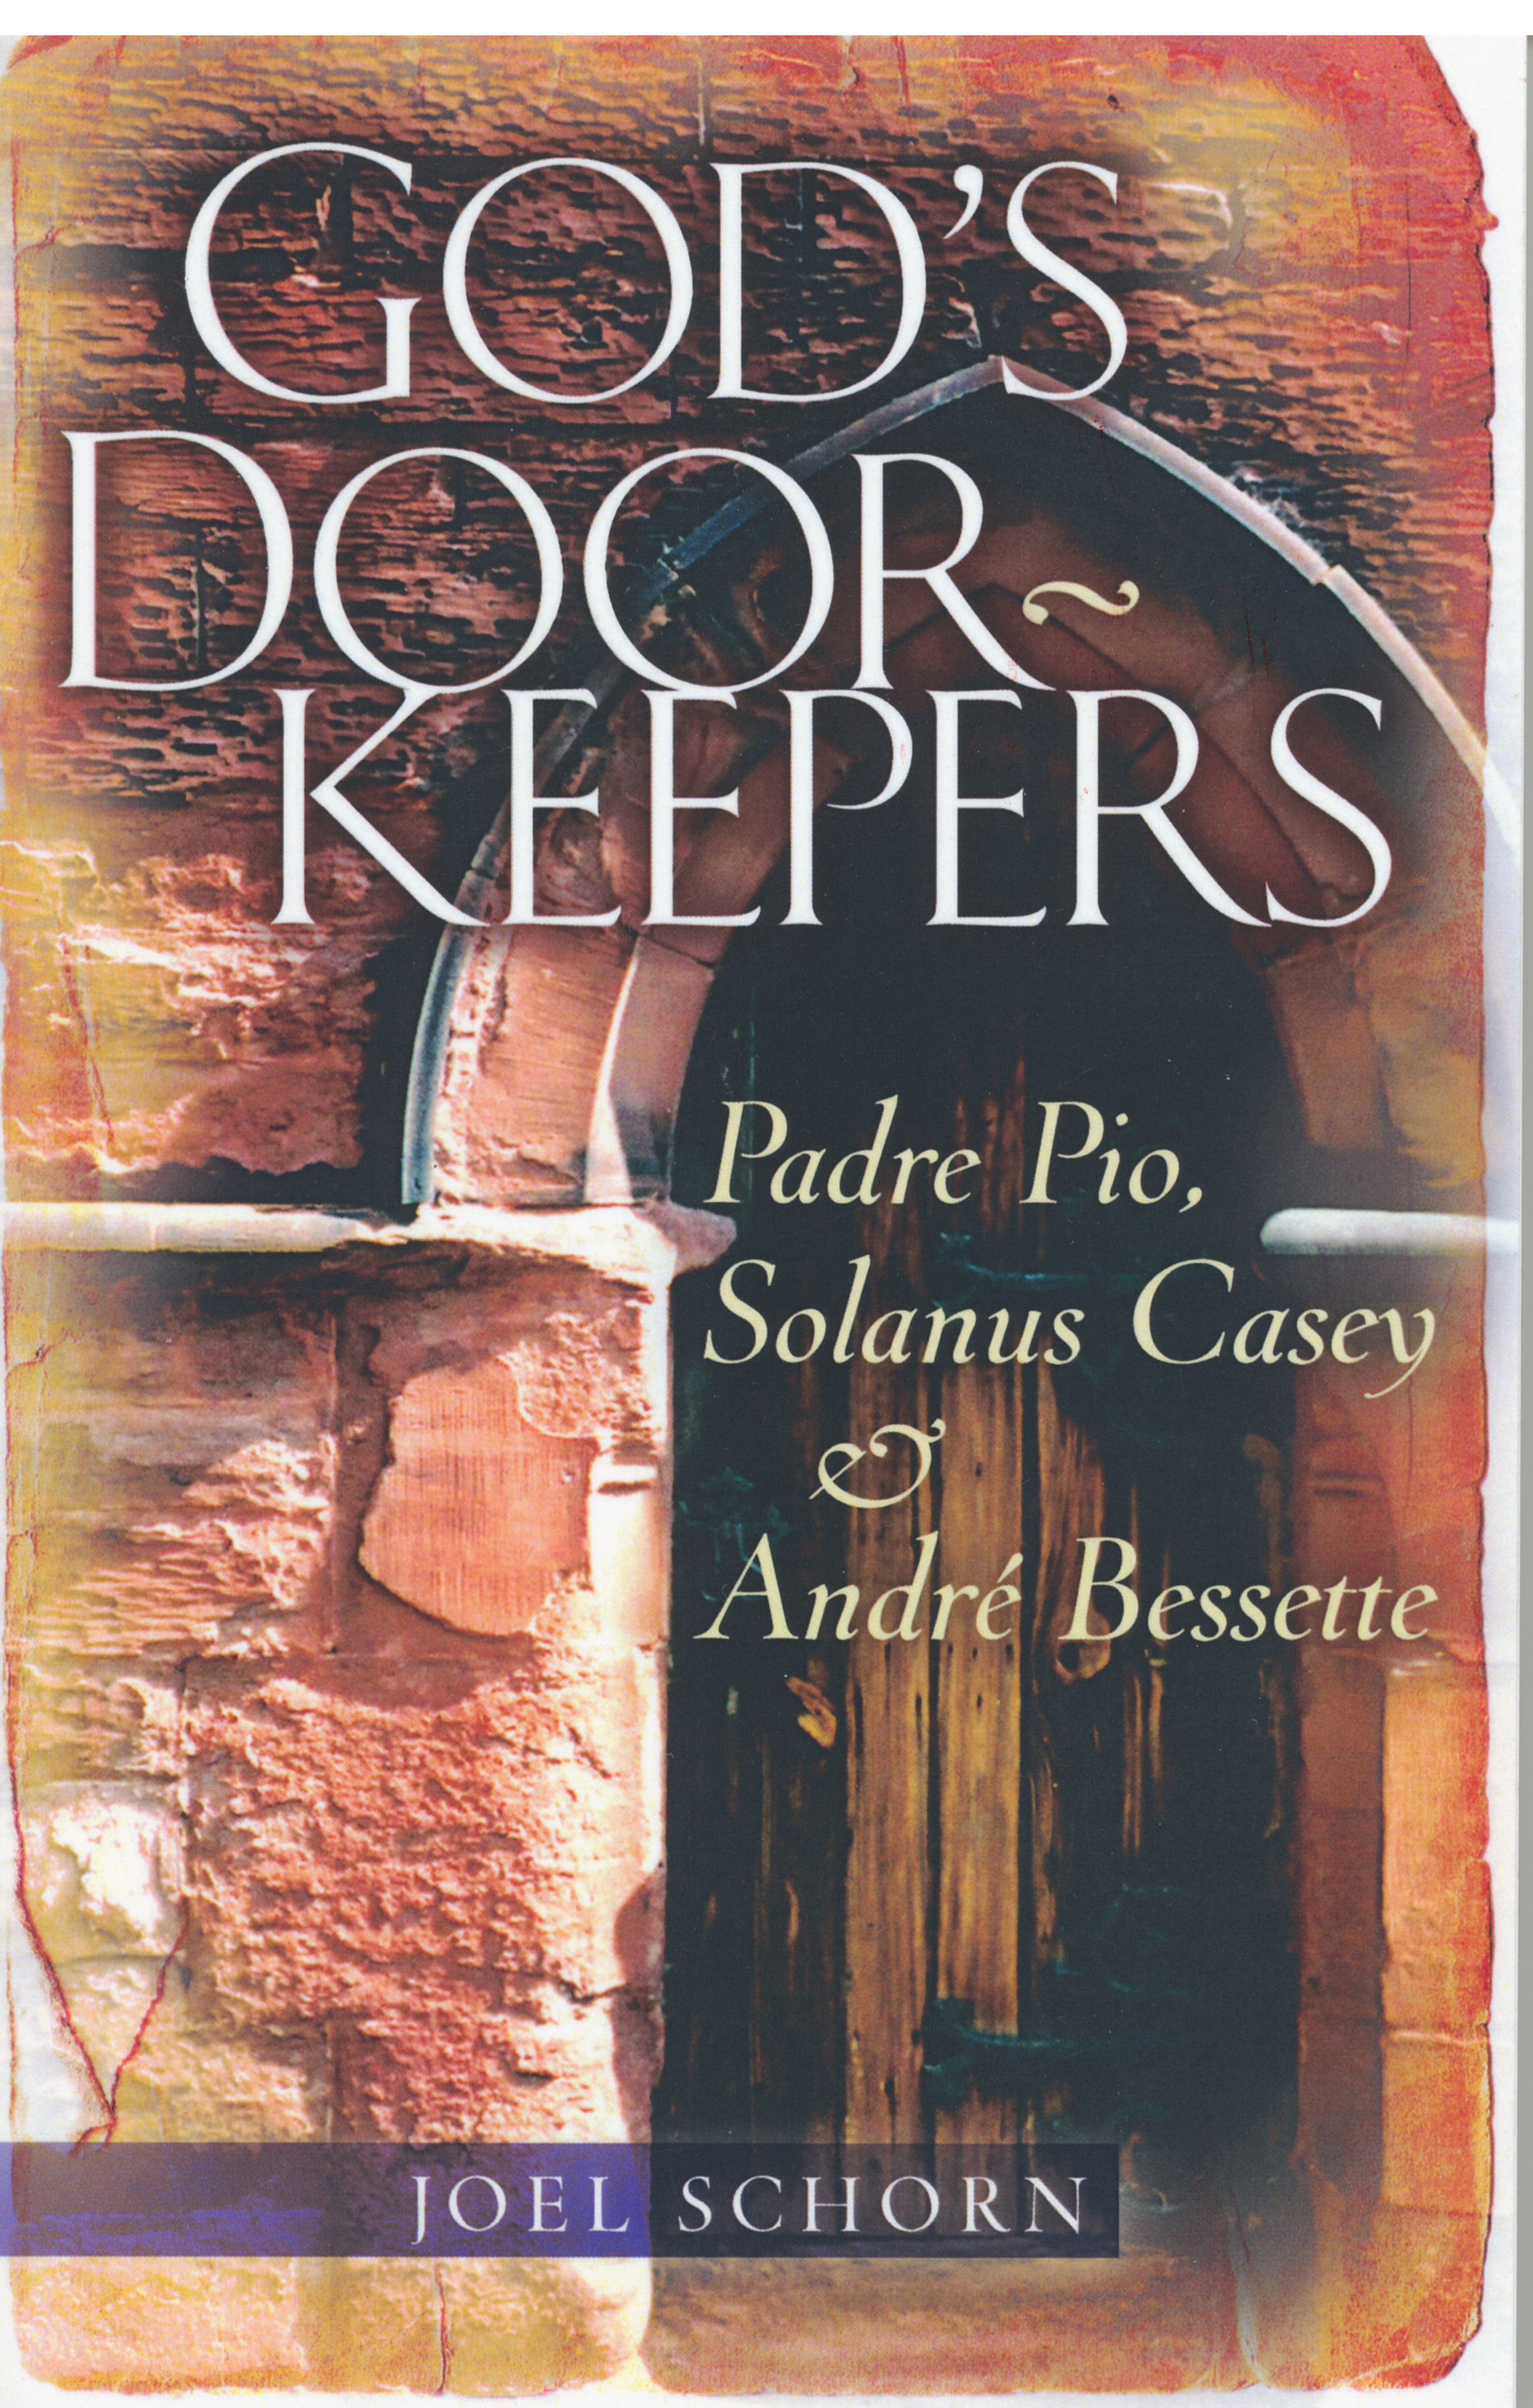 God's Doorkeepers: Padre Pio, Solanus Casey and Andre Bessette by Joel Schorn 108-9780867166996